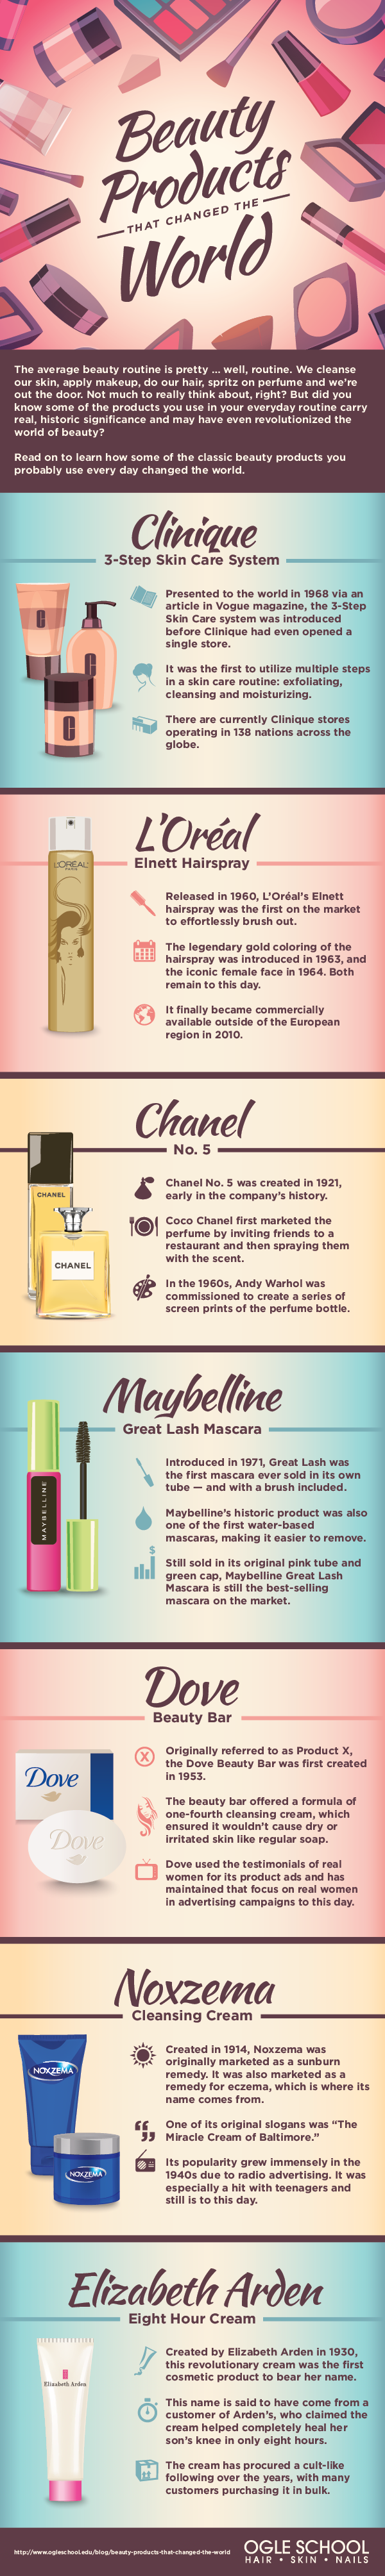 Beauty Products That Changed The World #infographic